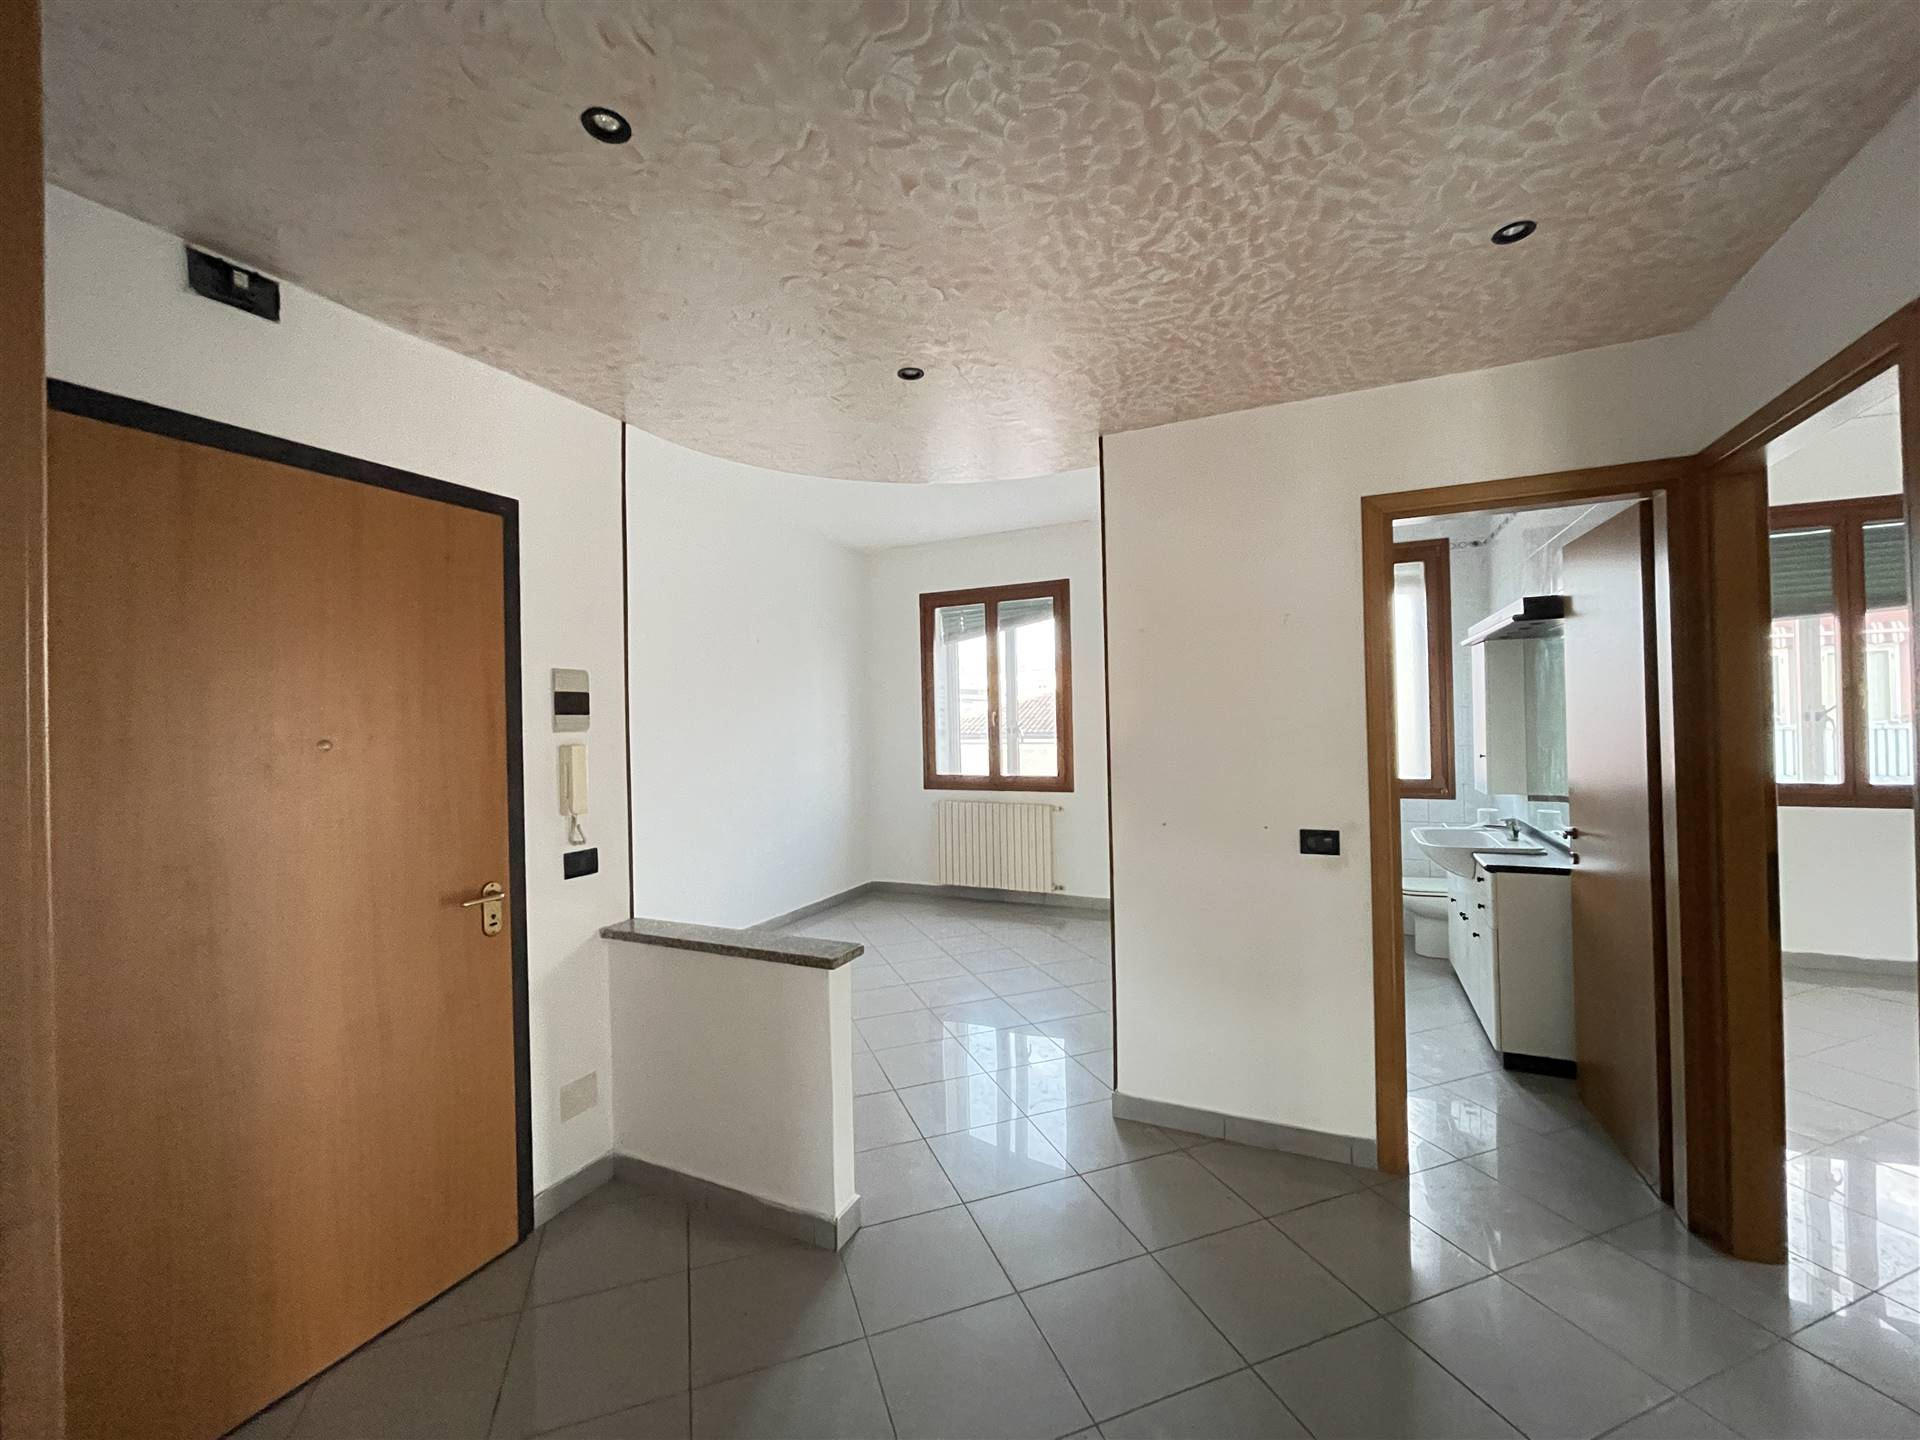 TOMBOLA, CHIOGGIA, Apartment for sale of 70 Sq. mt., Good condition, Heating Individual heating system, Energetic class: G, placed at 3° on 3,